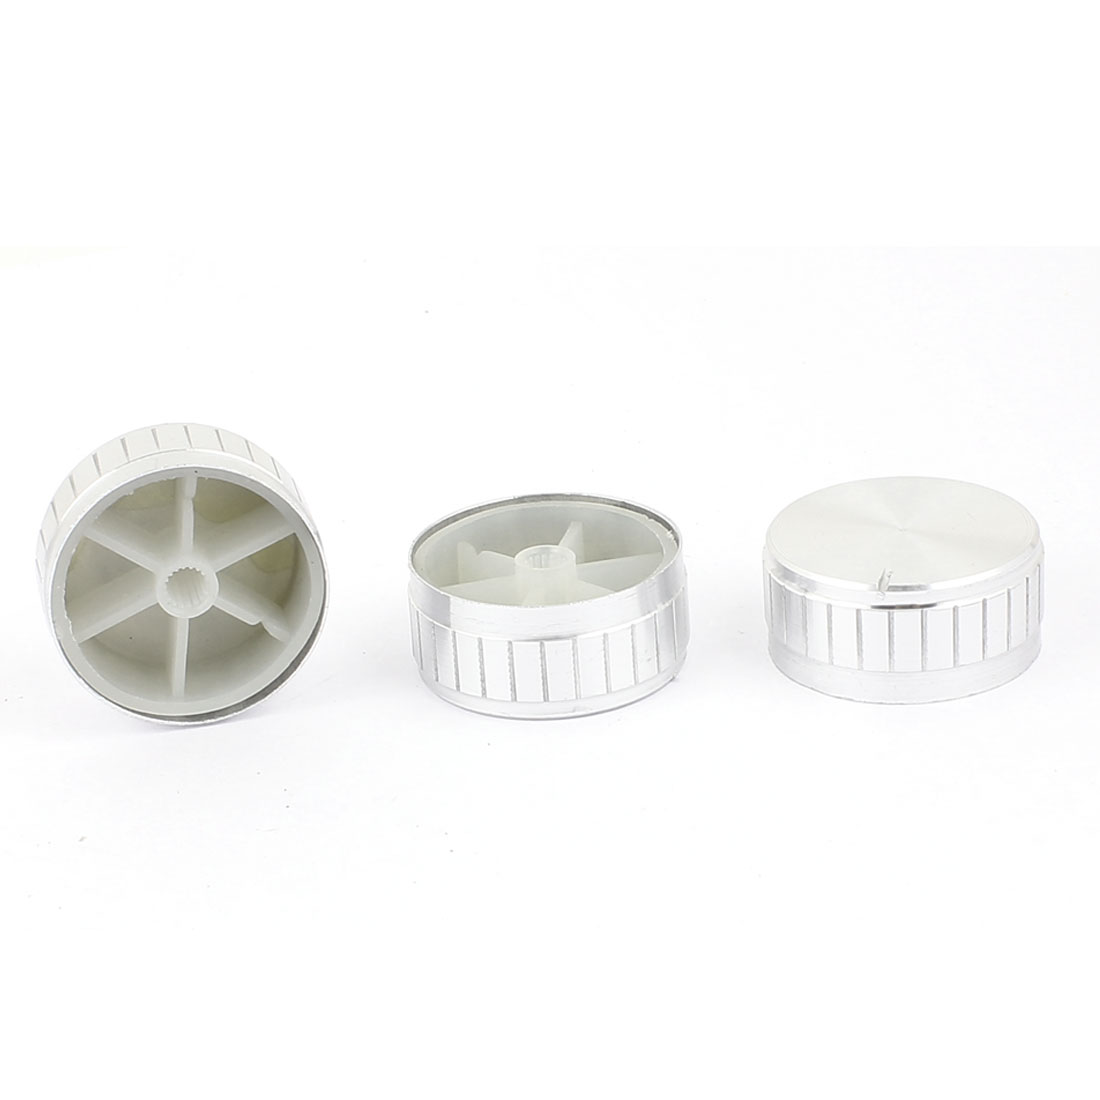 3 Pcs 40mm x 6mm Aluminium Alloy Potentiometer Control Knob Volume Cap Knurled Button Silver Tone